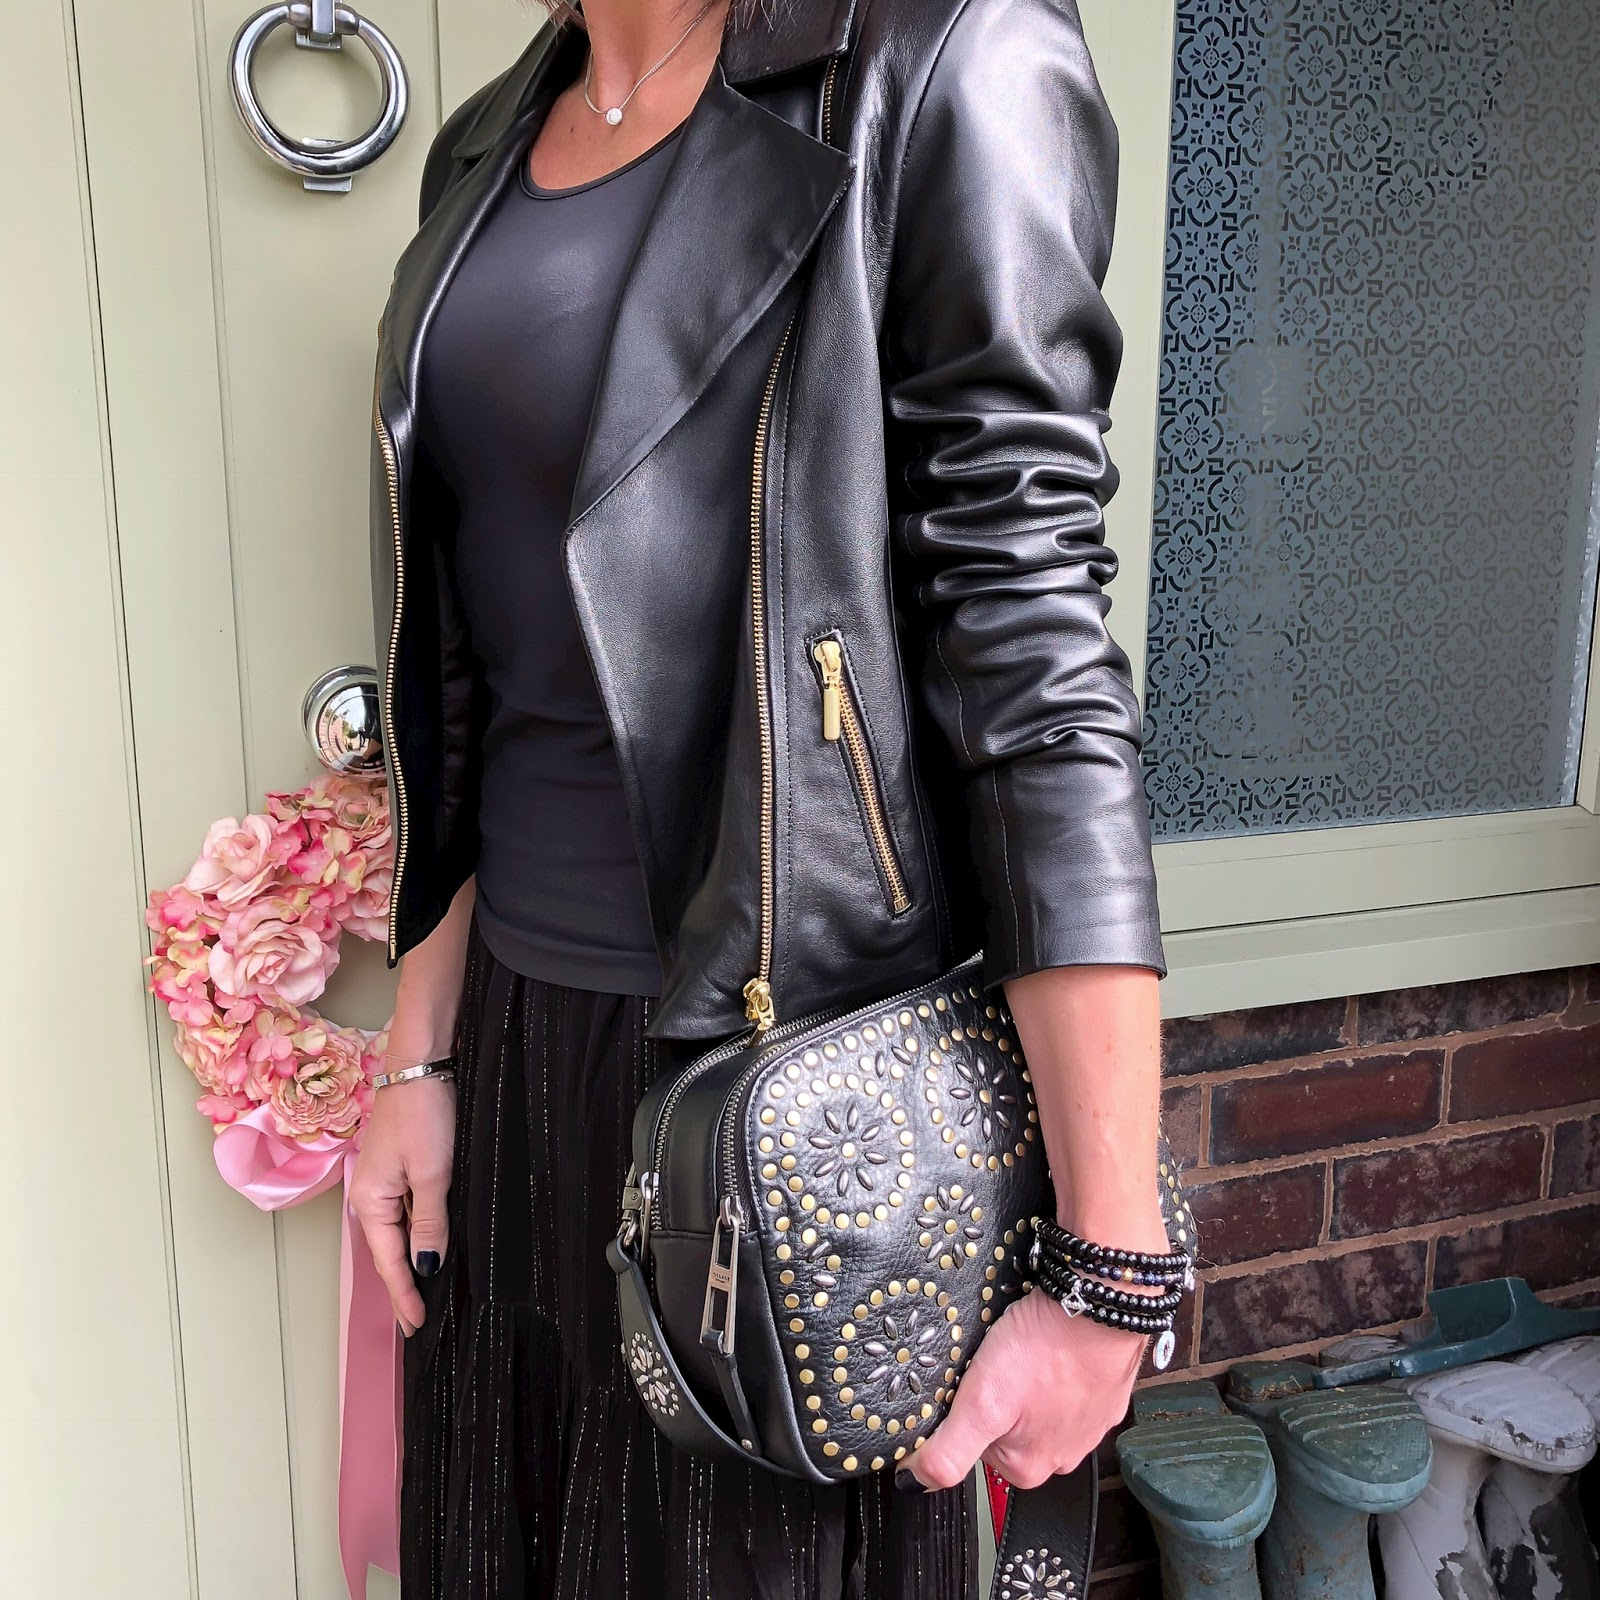 my midlife fashion, become tank top, village england pemberton studded cross body bag, baukjen everyday leather biker jacket, and other stories metallic maxi skirt, j crew pointed mesh flats